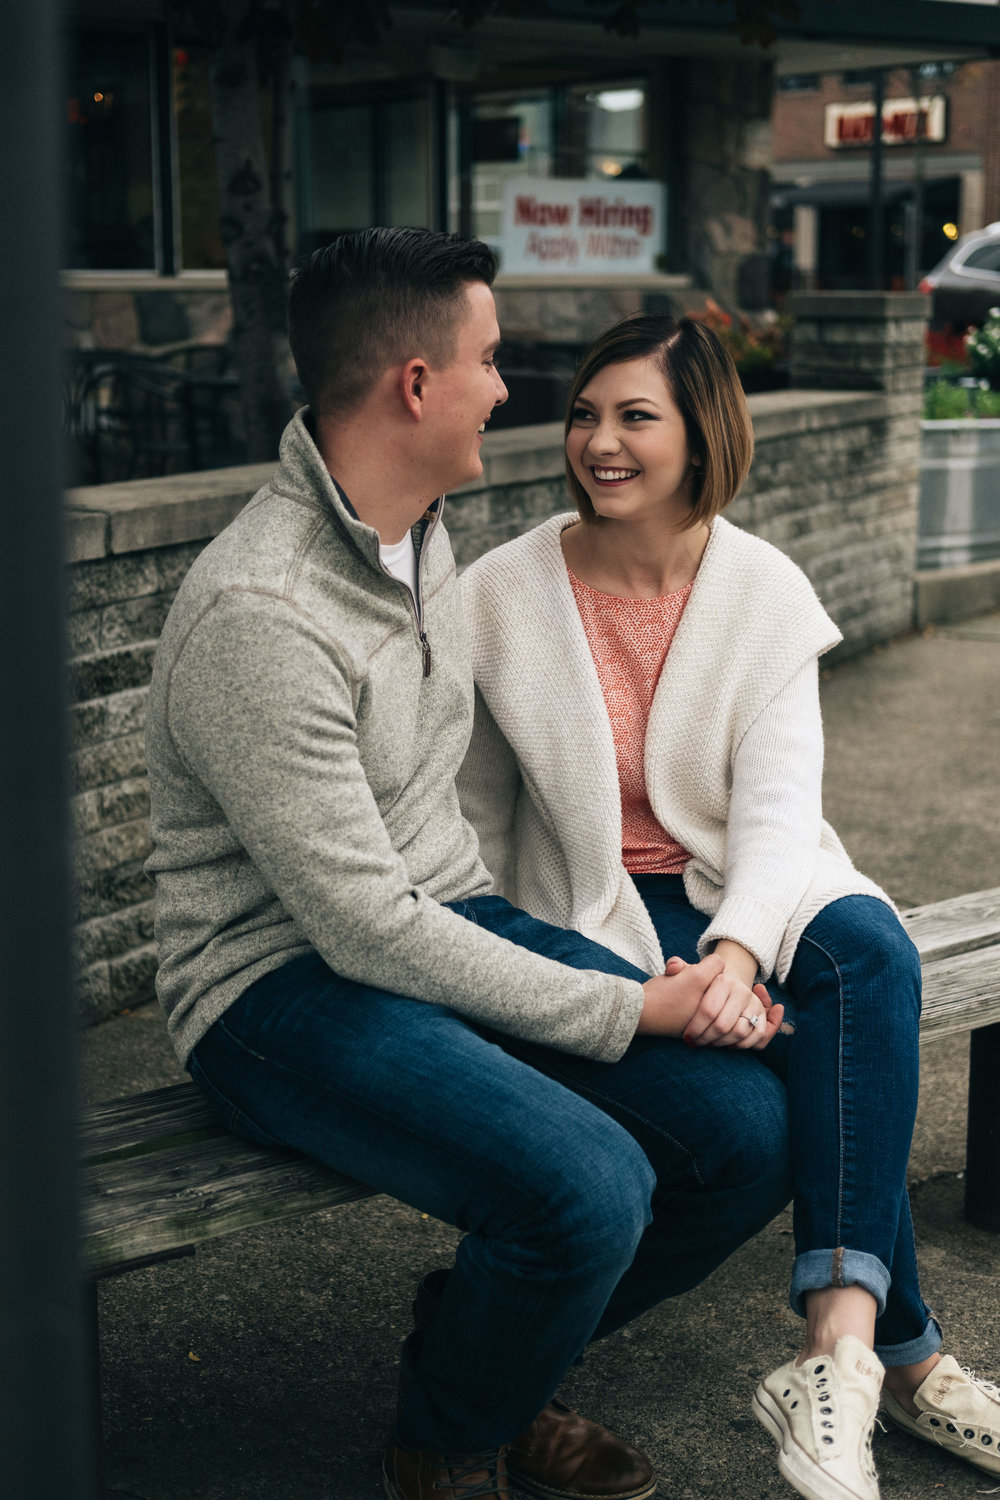 Stylish engagement session in downtown Royal Oak, Michigan.